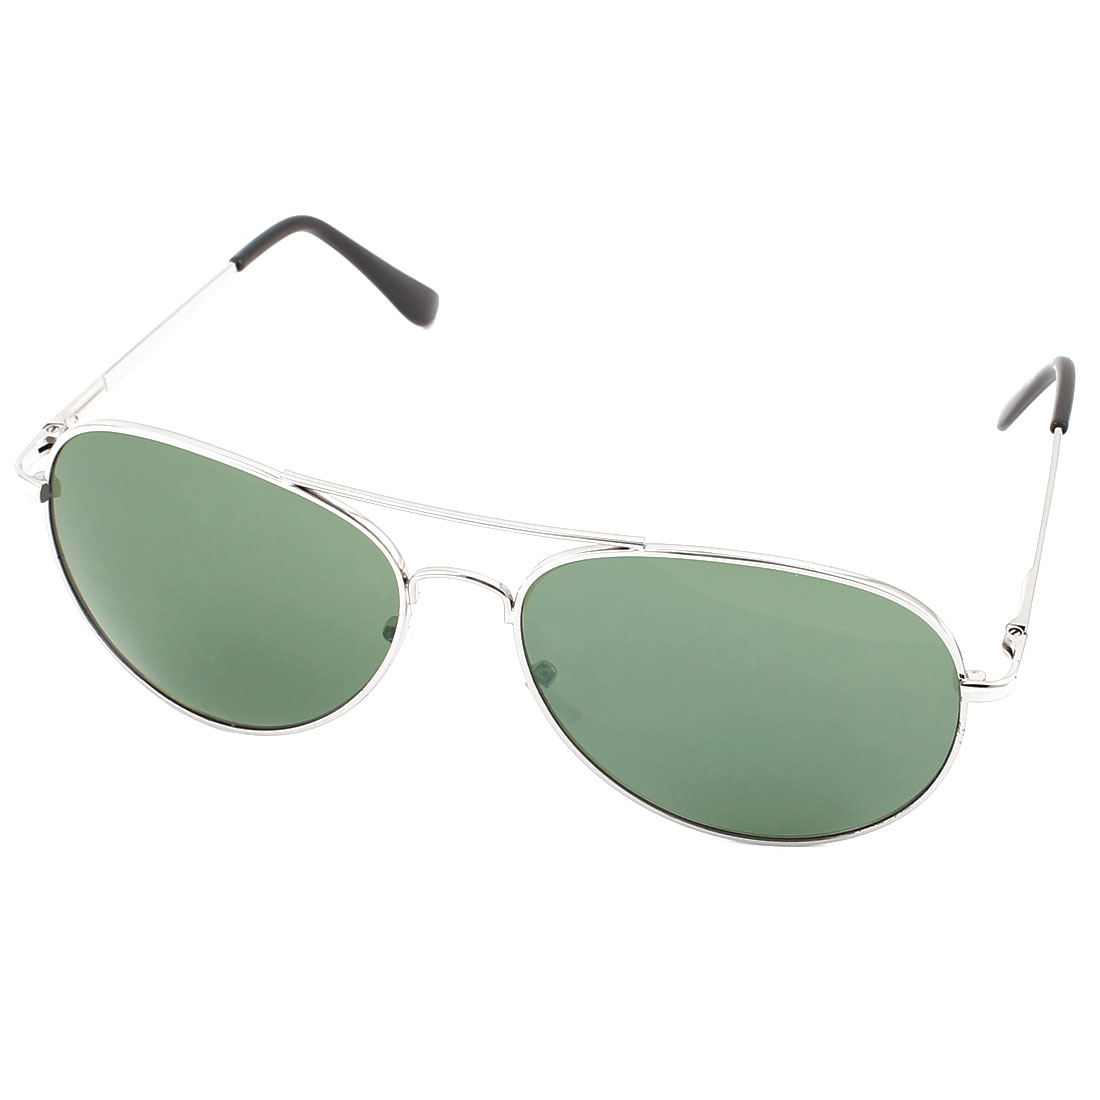 Men Outdoor Casual Double Bridge Silver Tone Metal Full Frame Dark Green Waterdrop Lens Sunglasses Eyewear Eye Protector Glasses